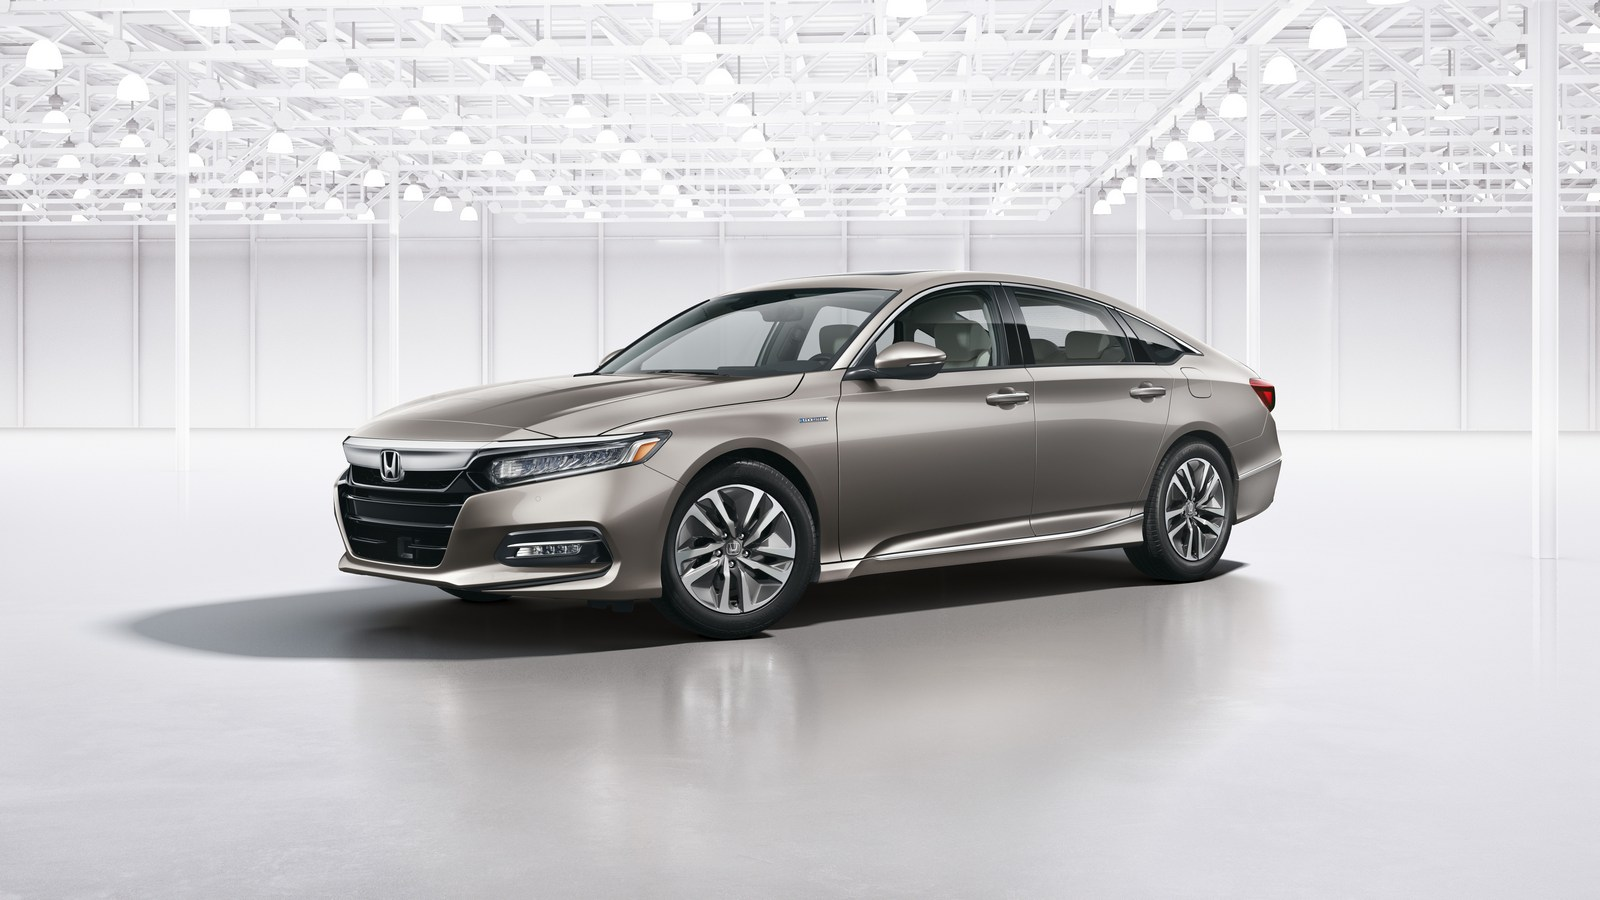 Honda Accord 2018 (18)